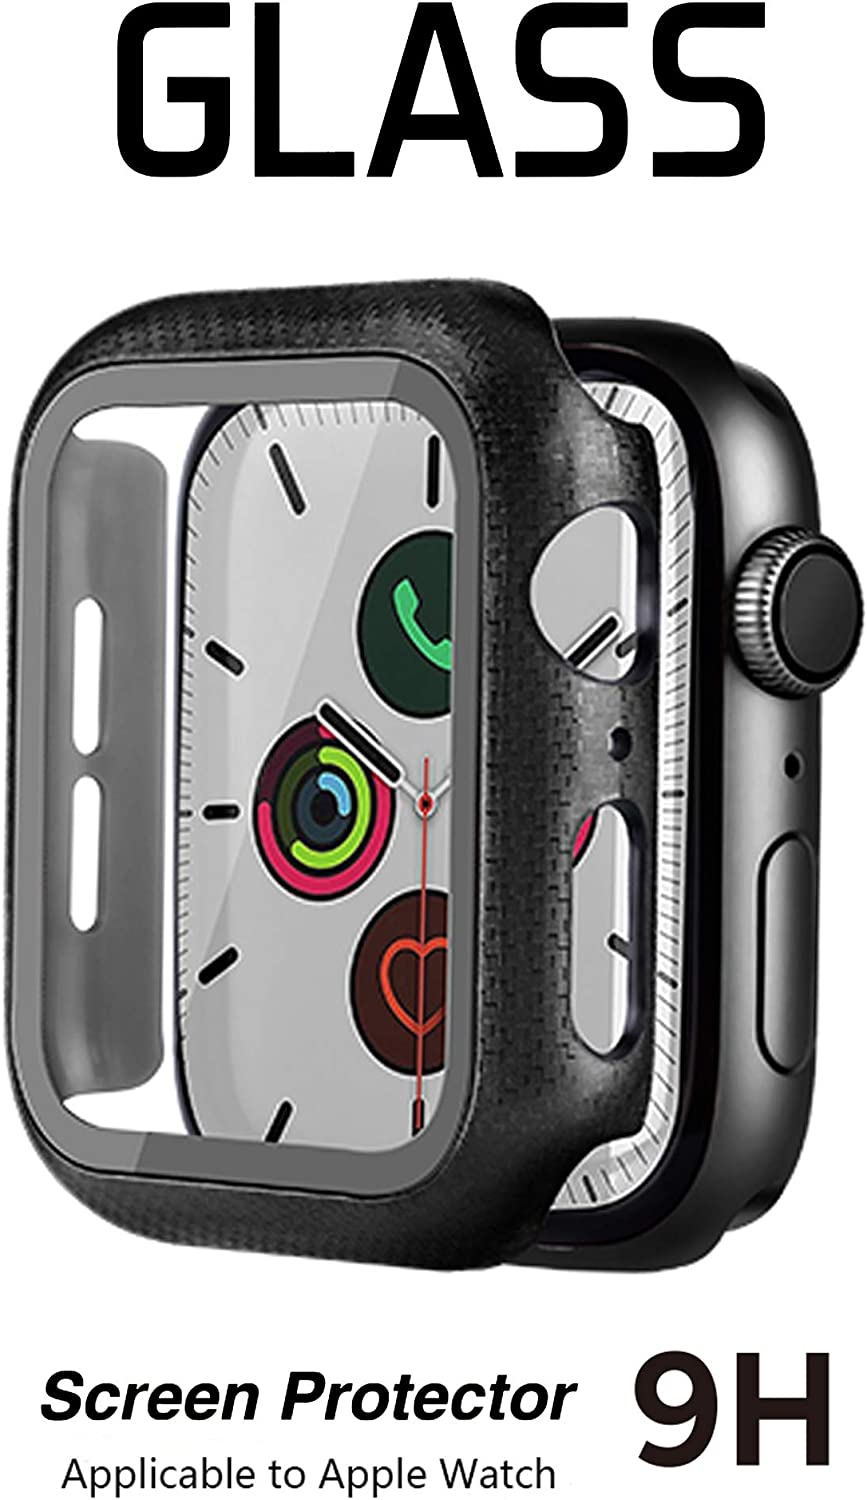 SNSIR Case for Apple Watch 42mm Series 3/2/1, Built-in Tempered Glass Screen Protector with a Carbon Fiber-Like Appearance Overall Protective Cover for iWatch Series 3/2/1 (42mm)